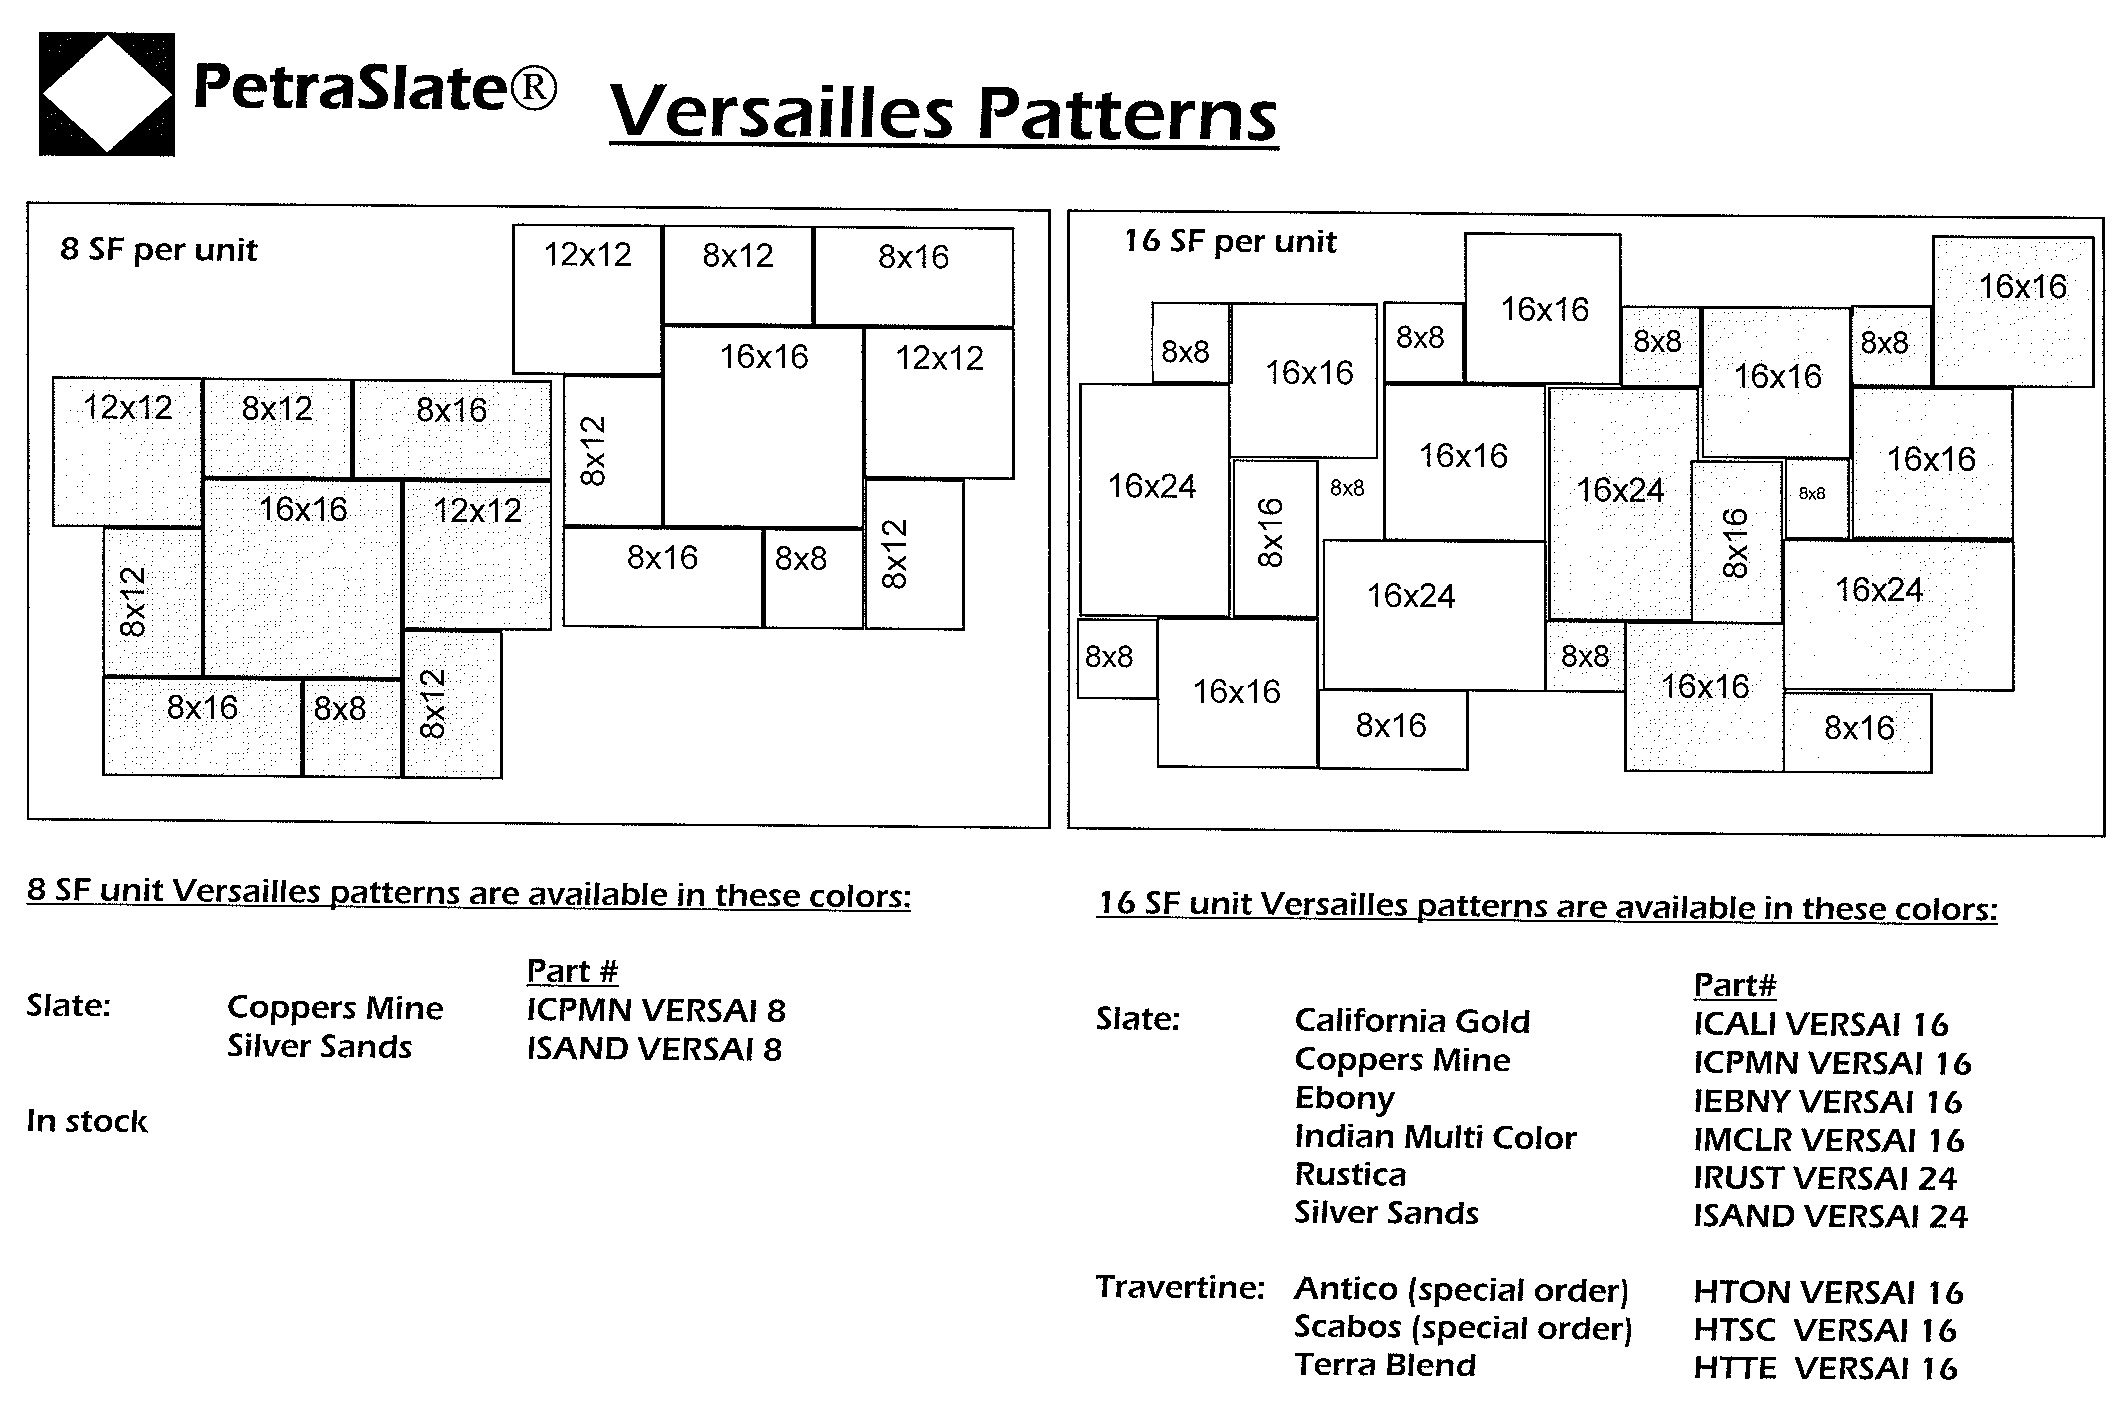 Versailles 8SF & 16SF Patterns